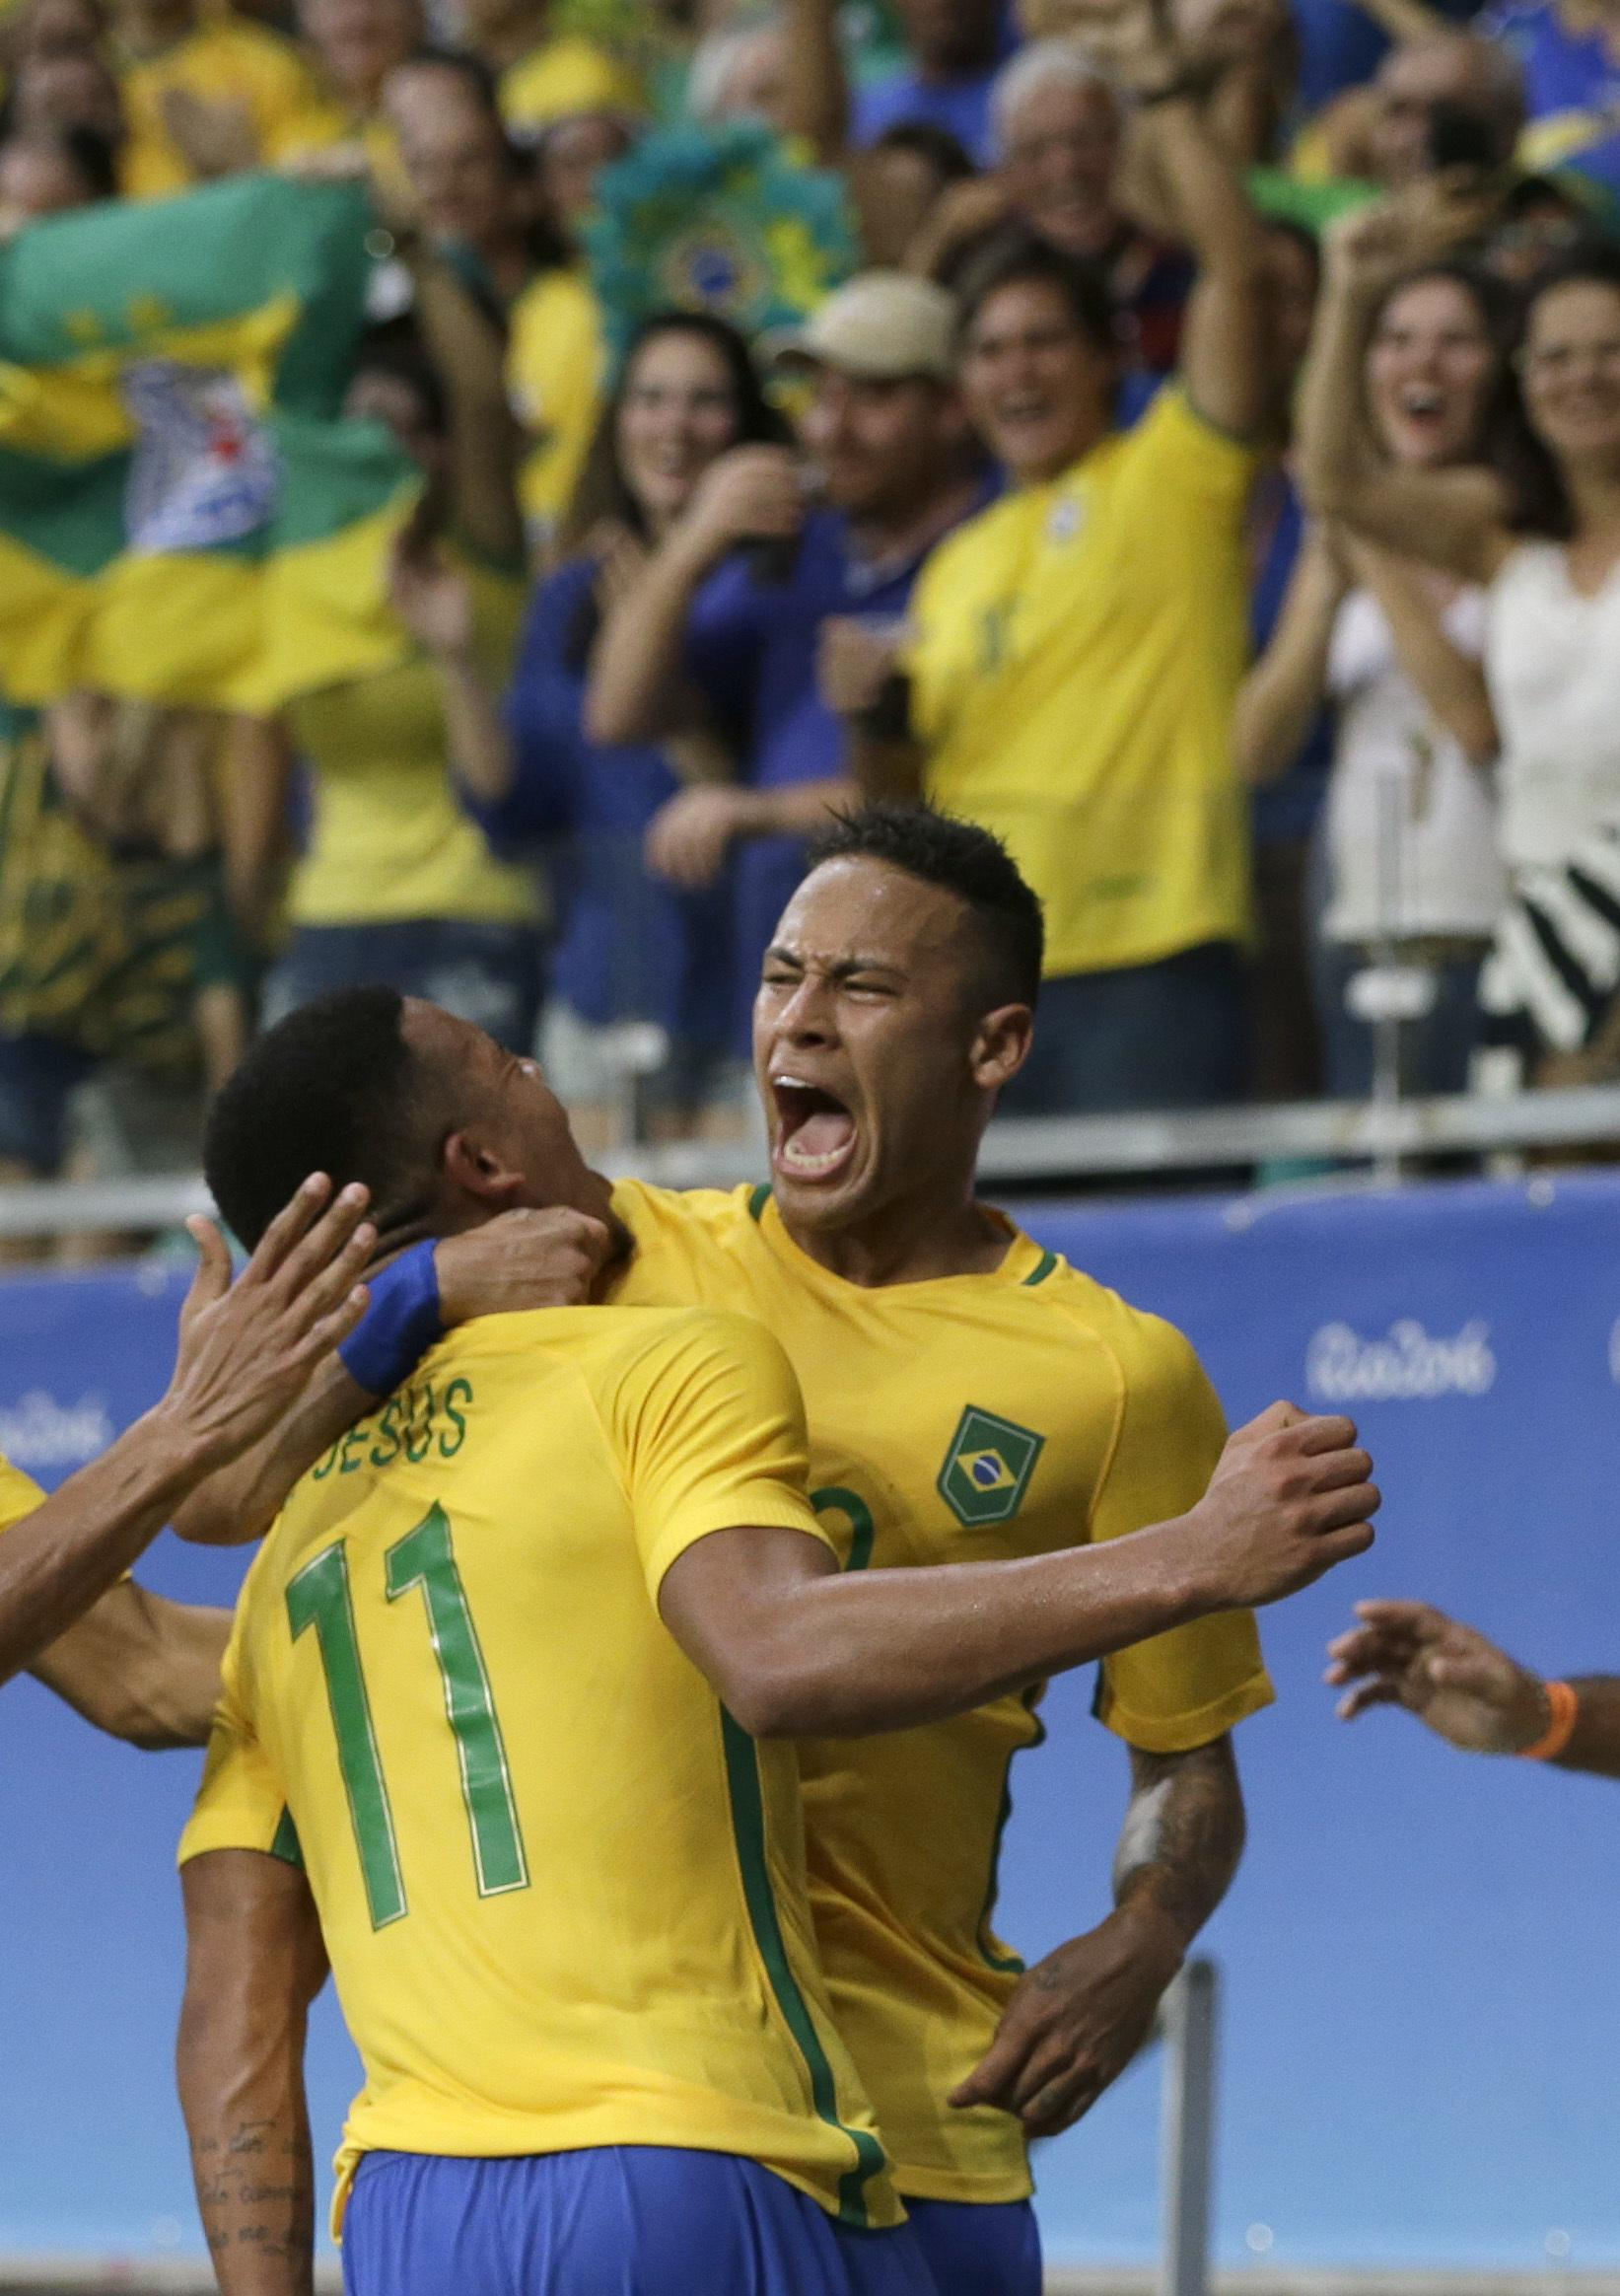 aff3682d7a496 Brazil hopes to feed off famed Maracana in soccer semifinal